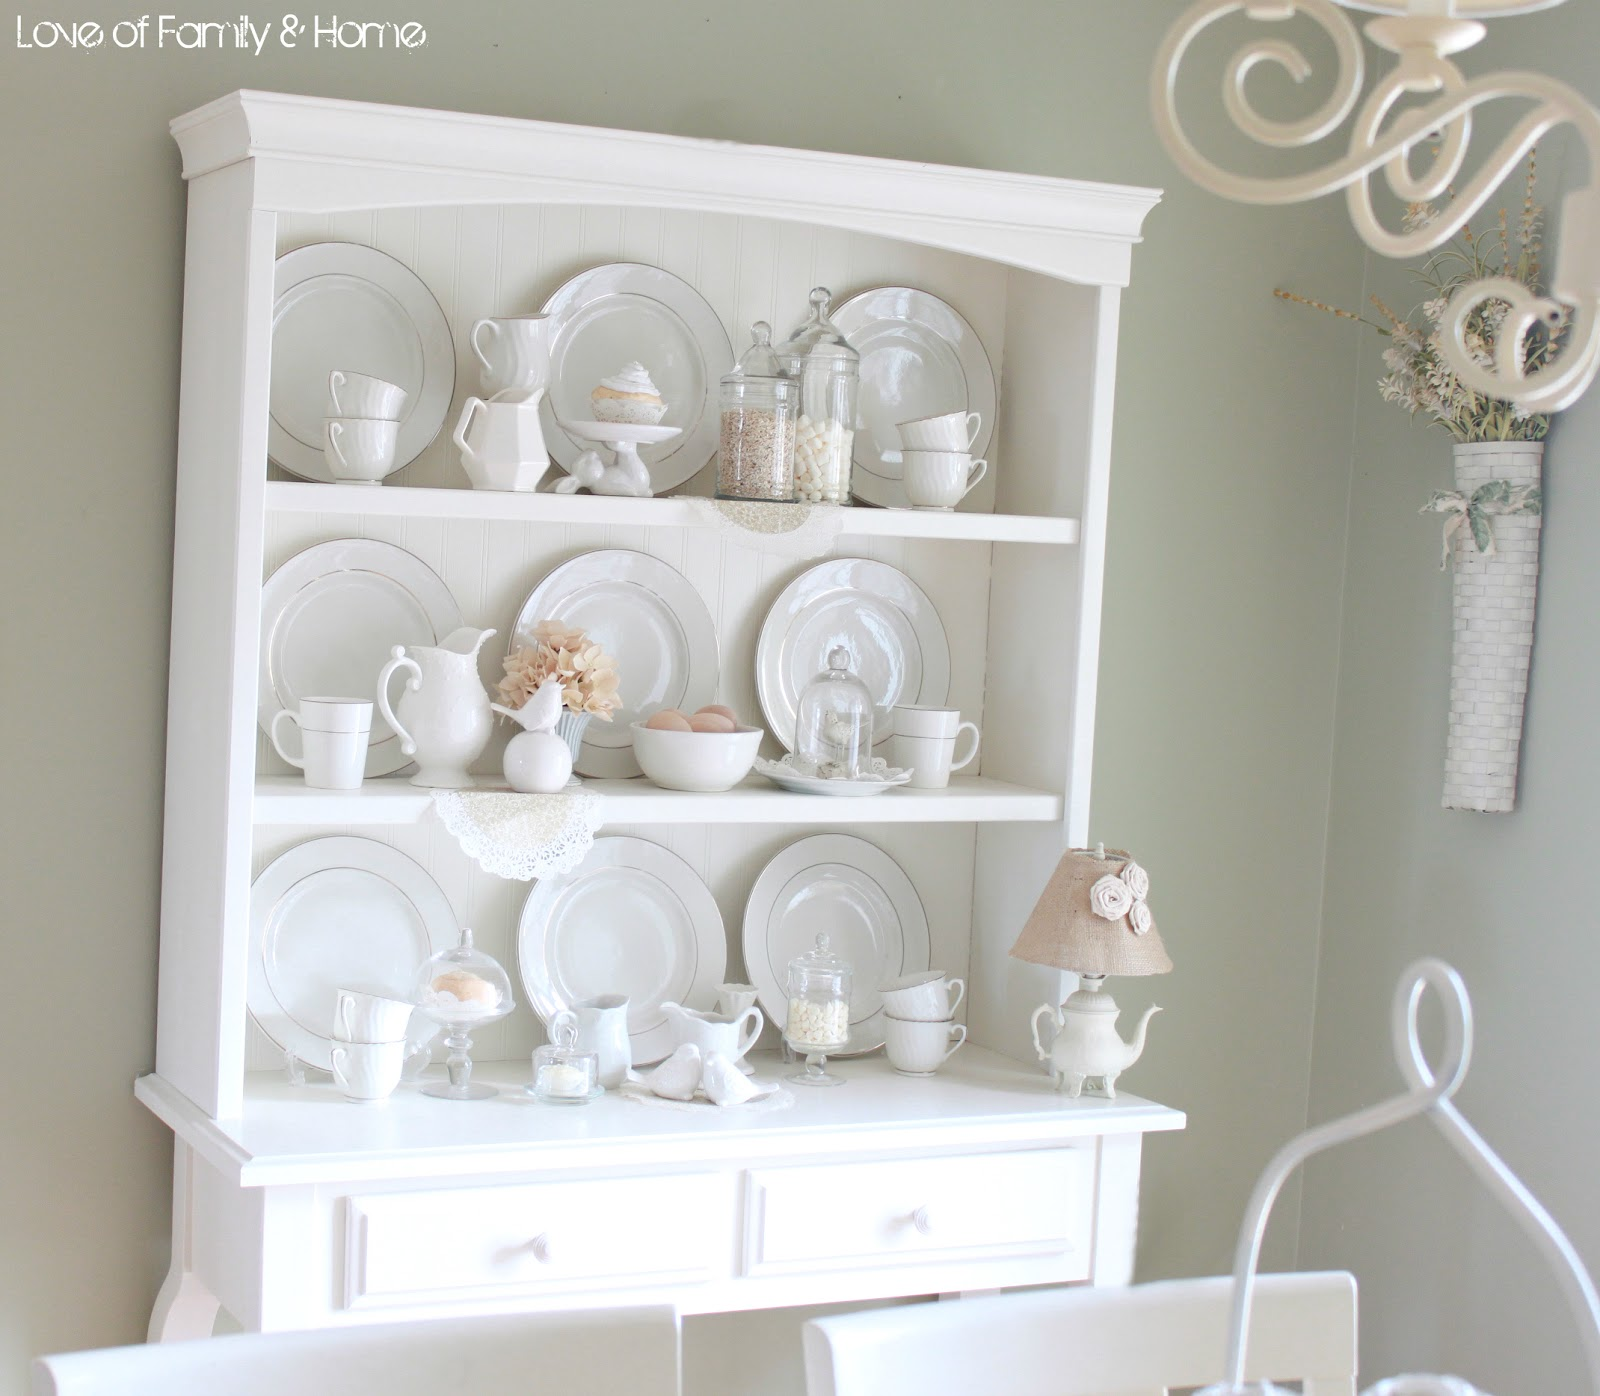 A creamy dreamy hutch display love of family home for Hutch decor